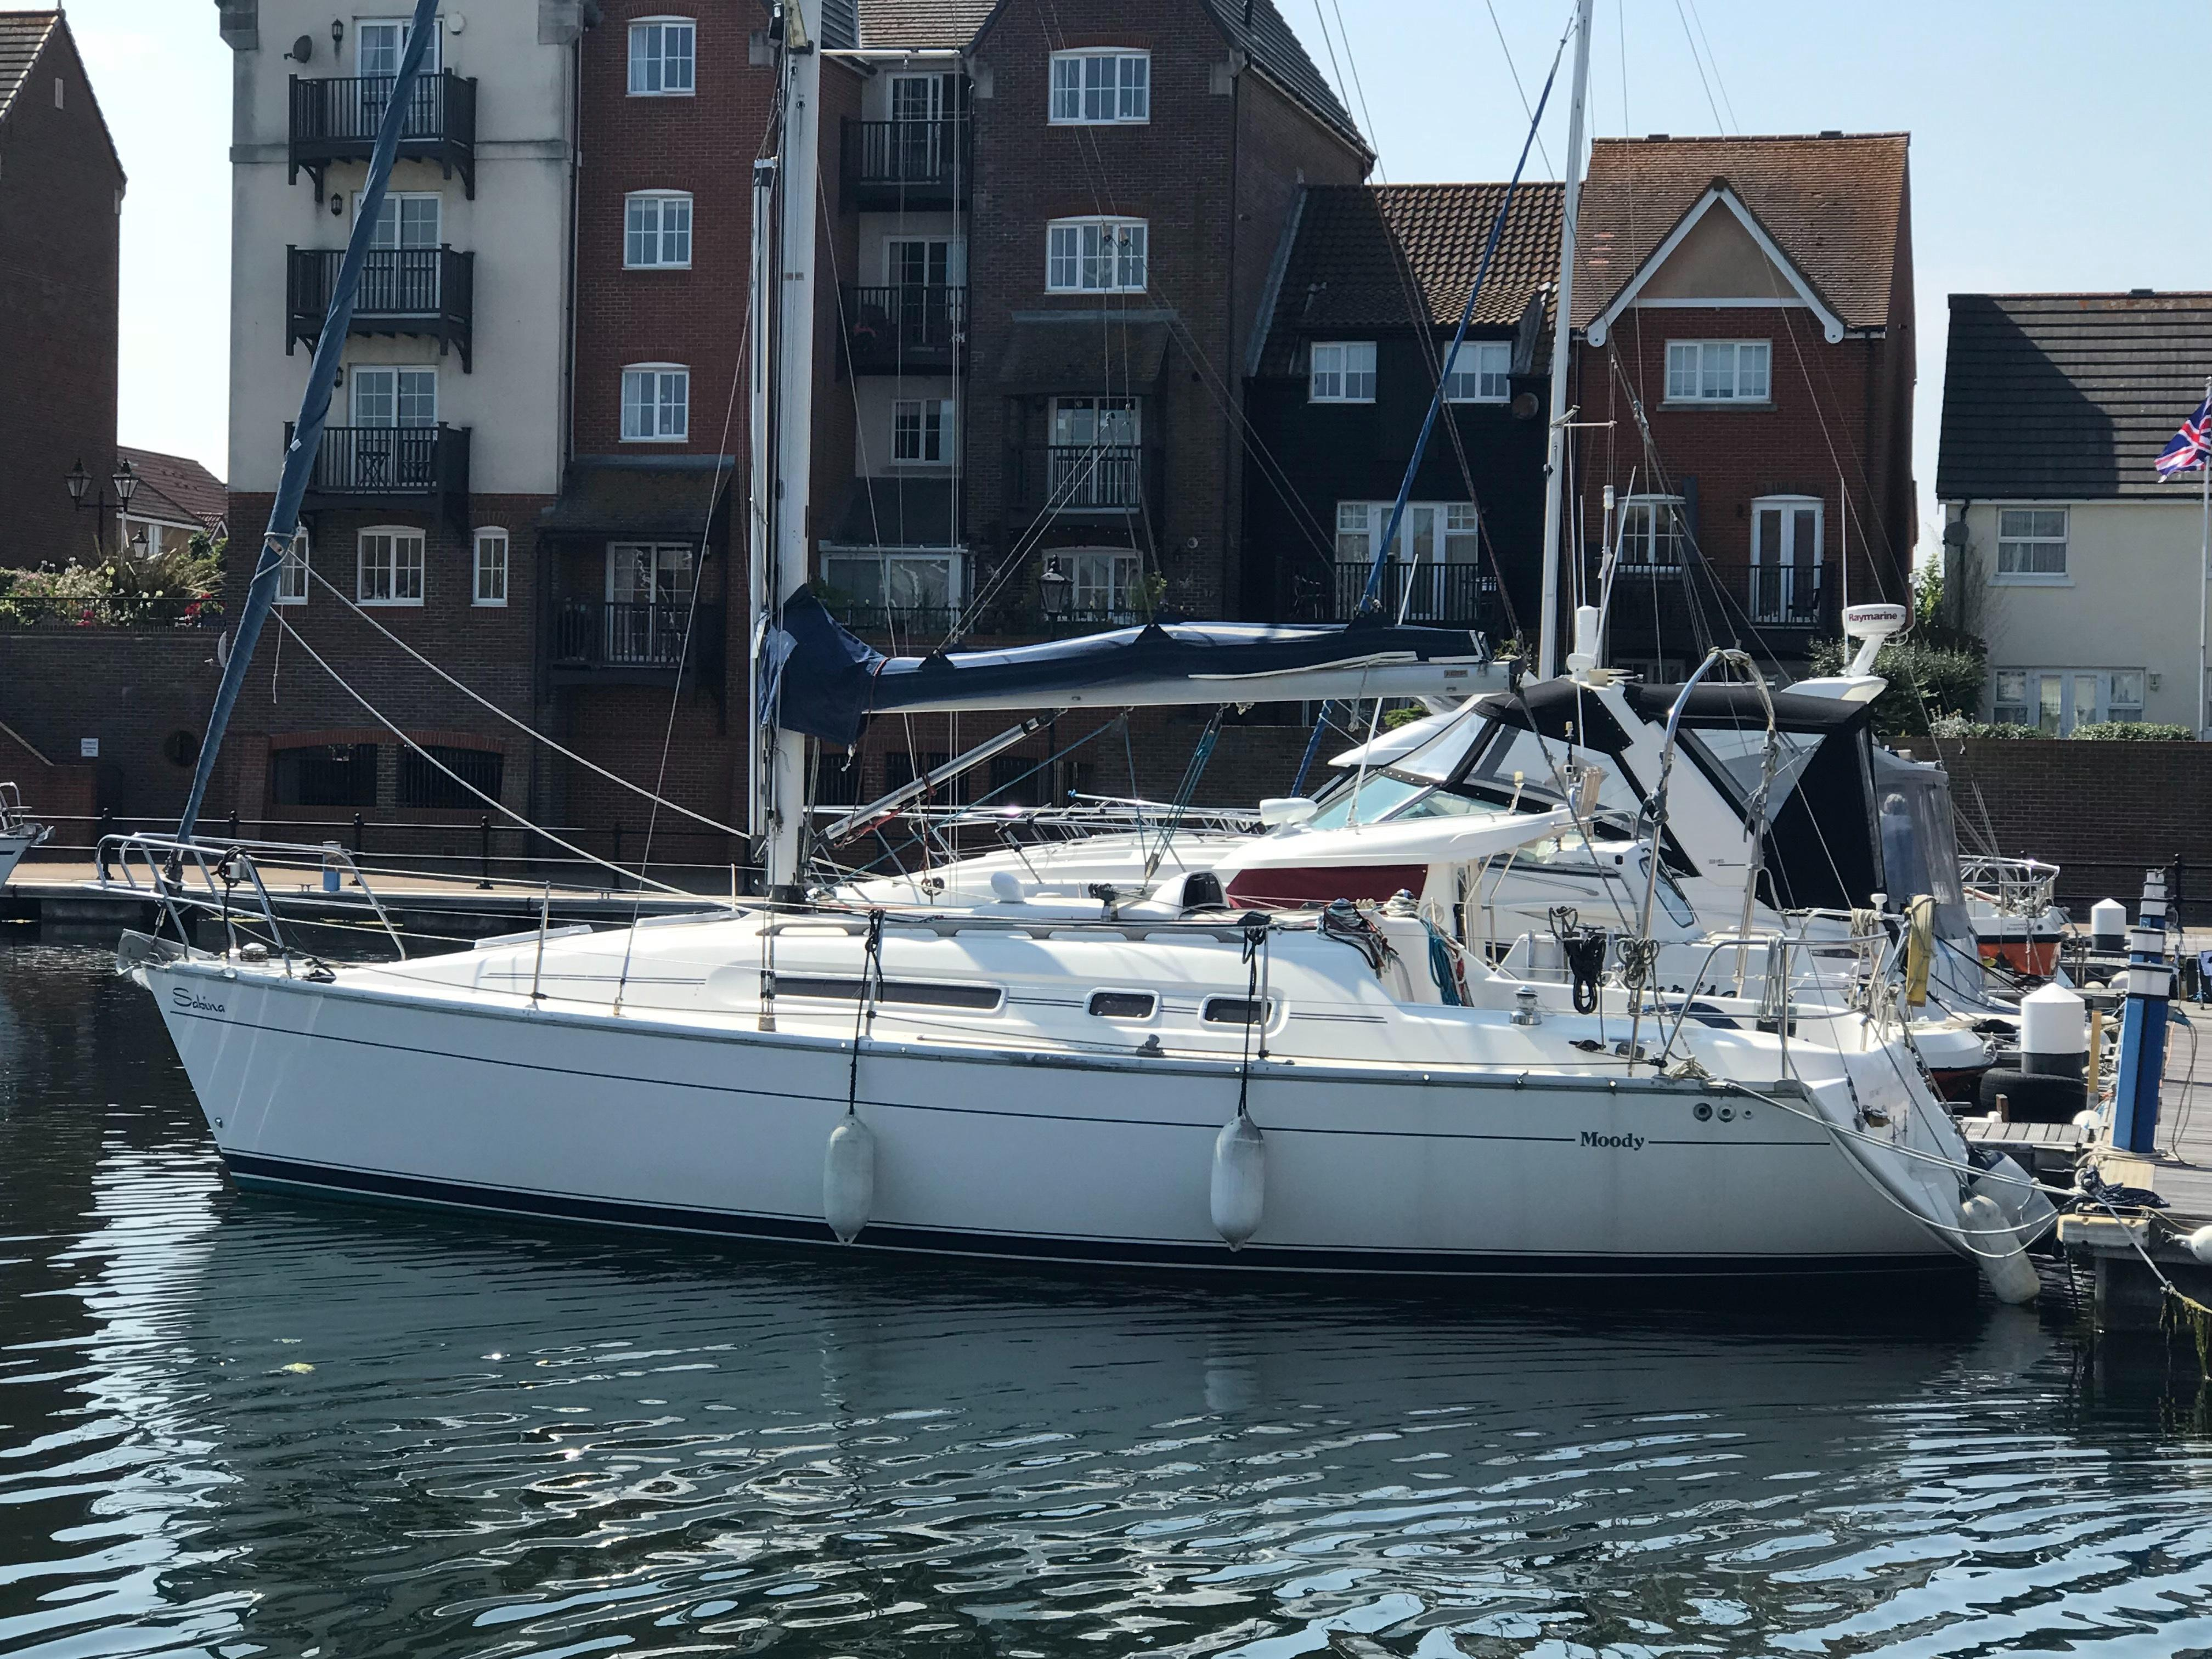 Moody S31 for sale - Bates Wharf